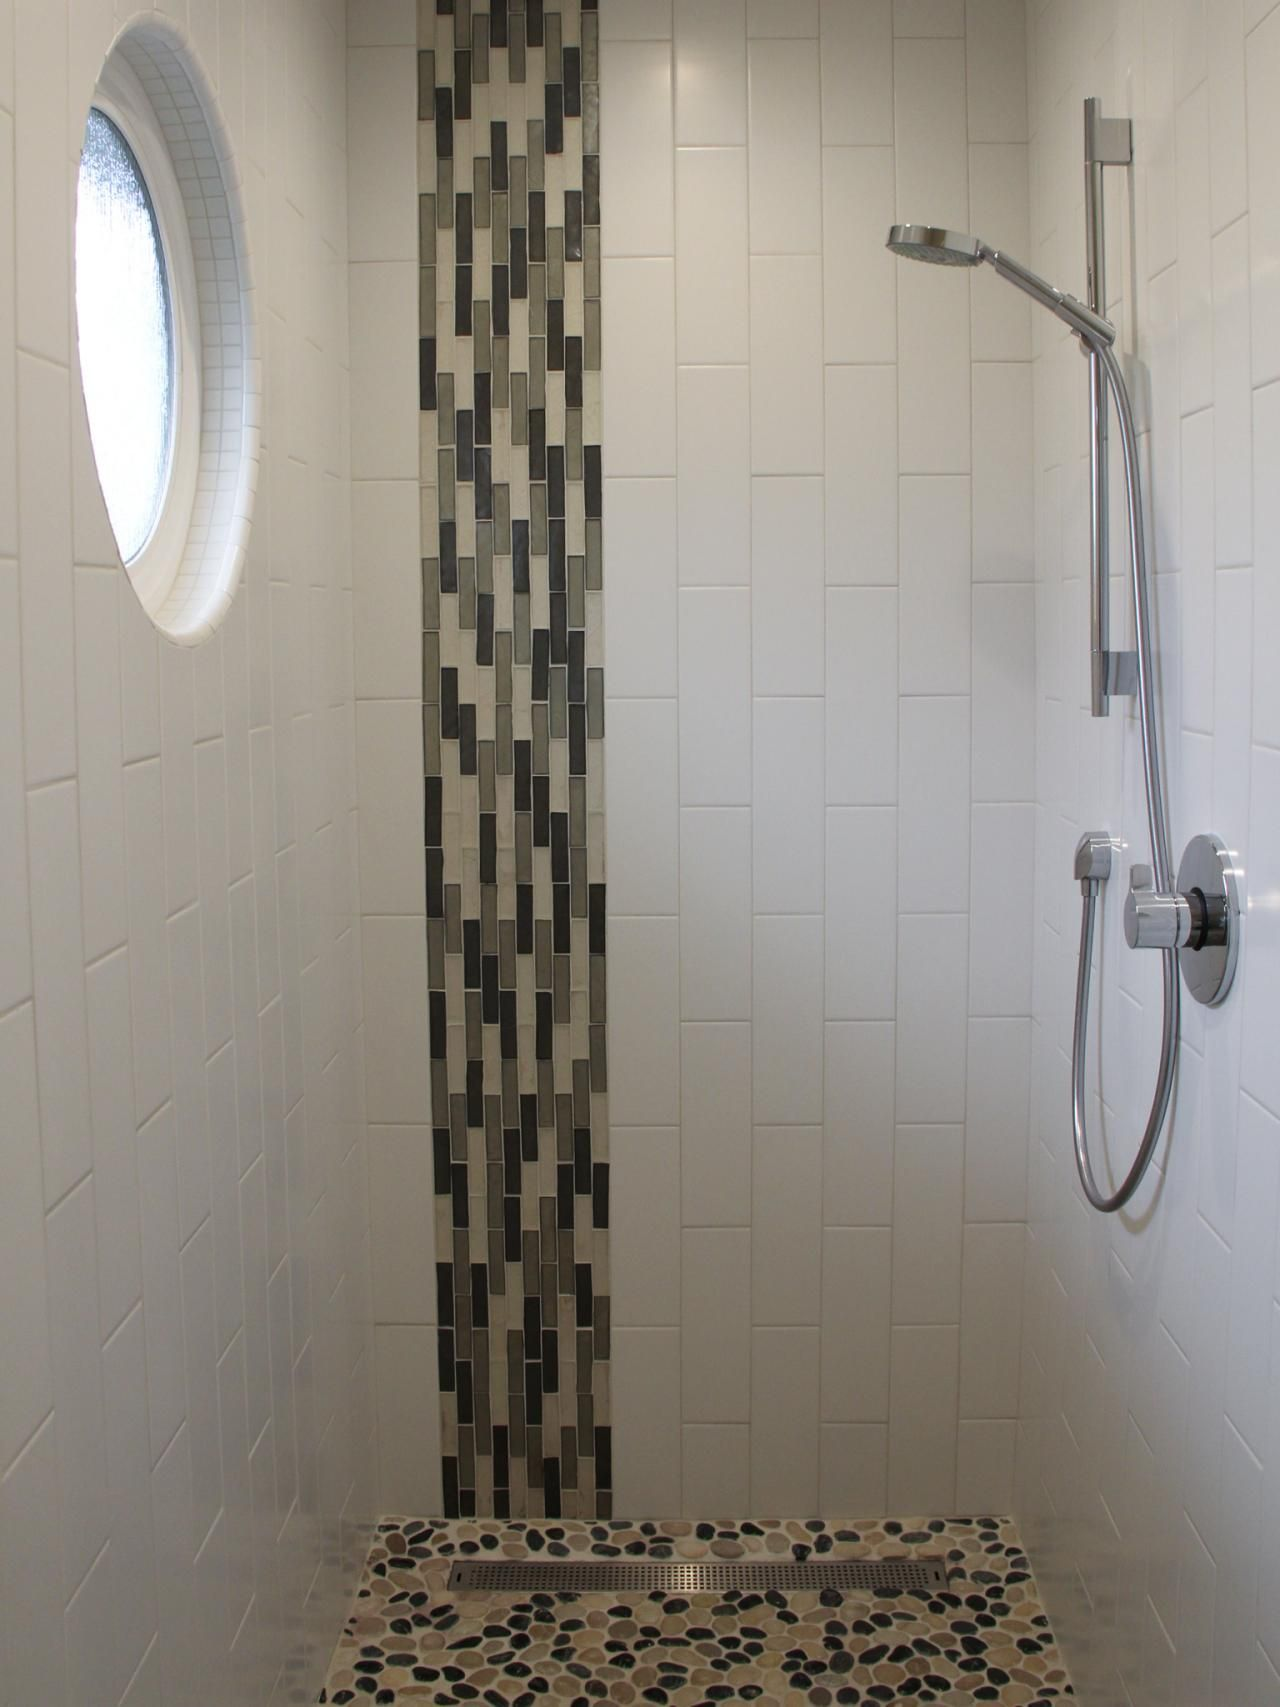 vertical white ceramic glass tile shower room wall panel with rounded glass window plus black and gray glass mosaic accent likeable shower designs with